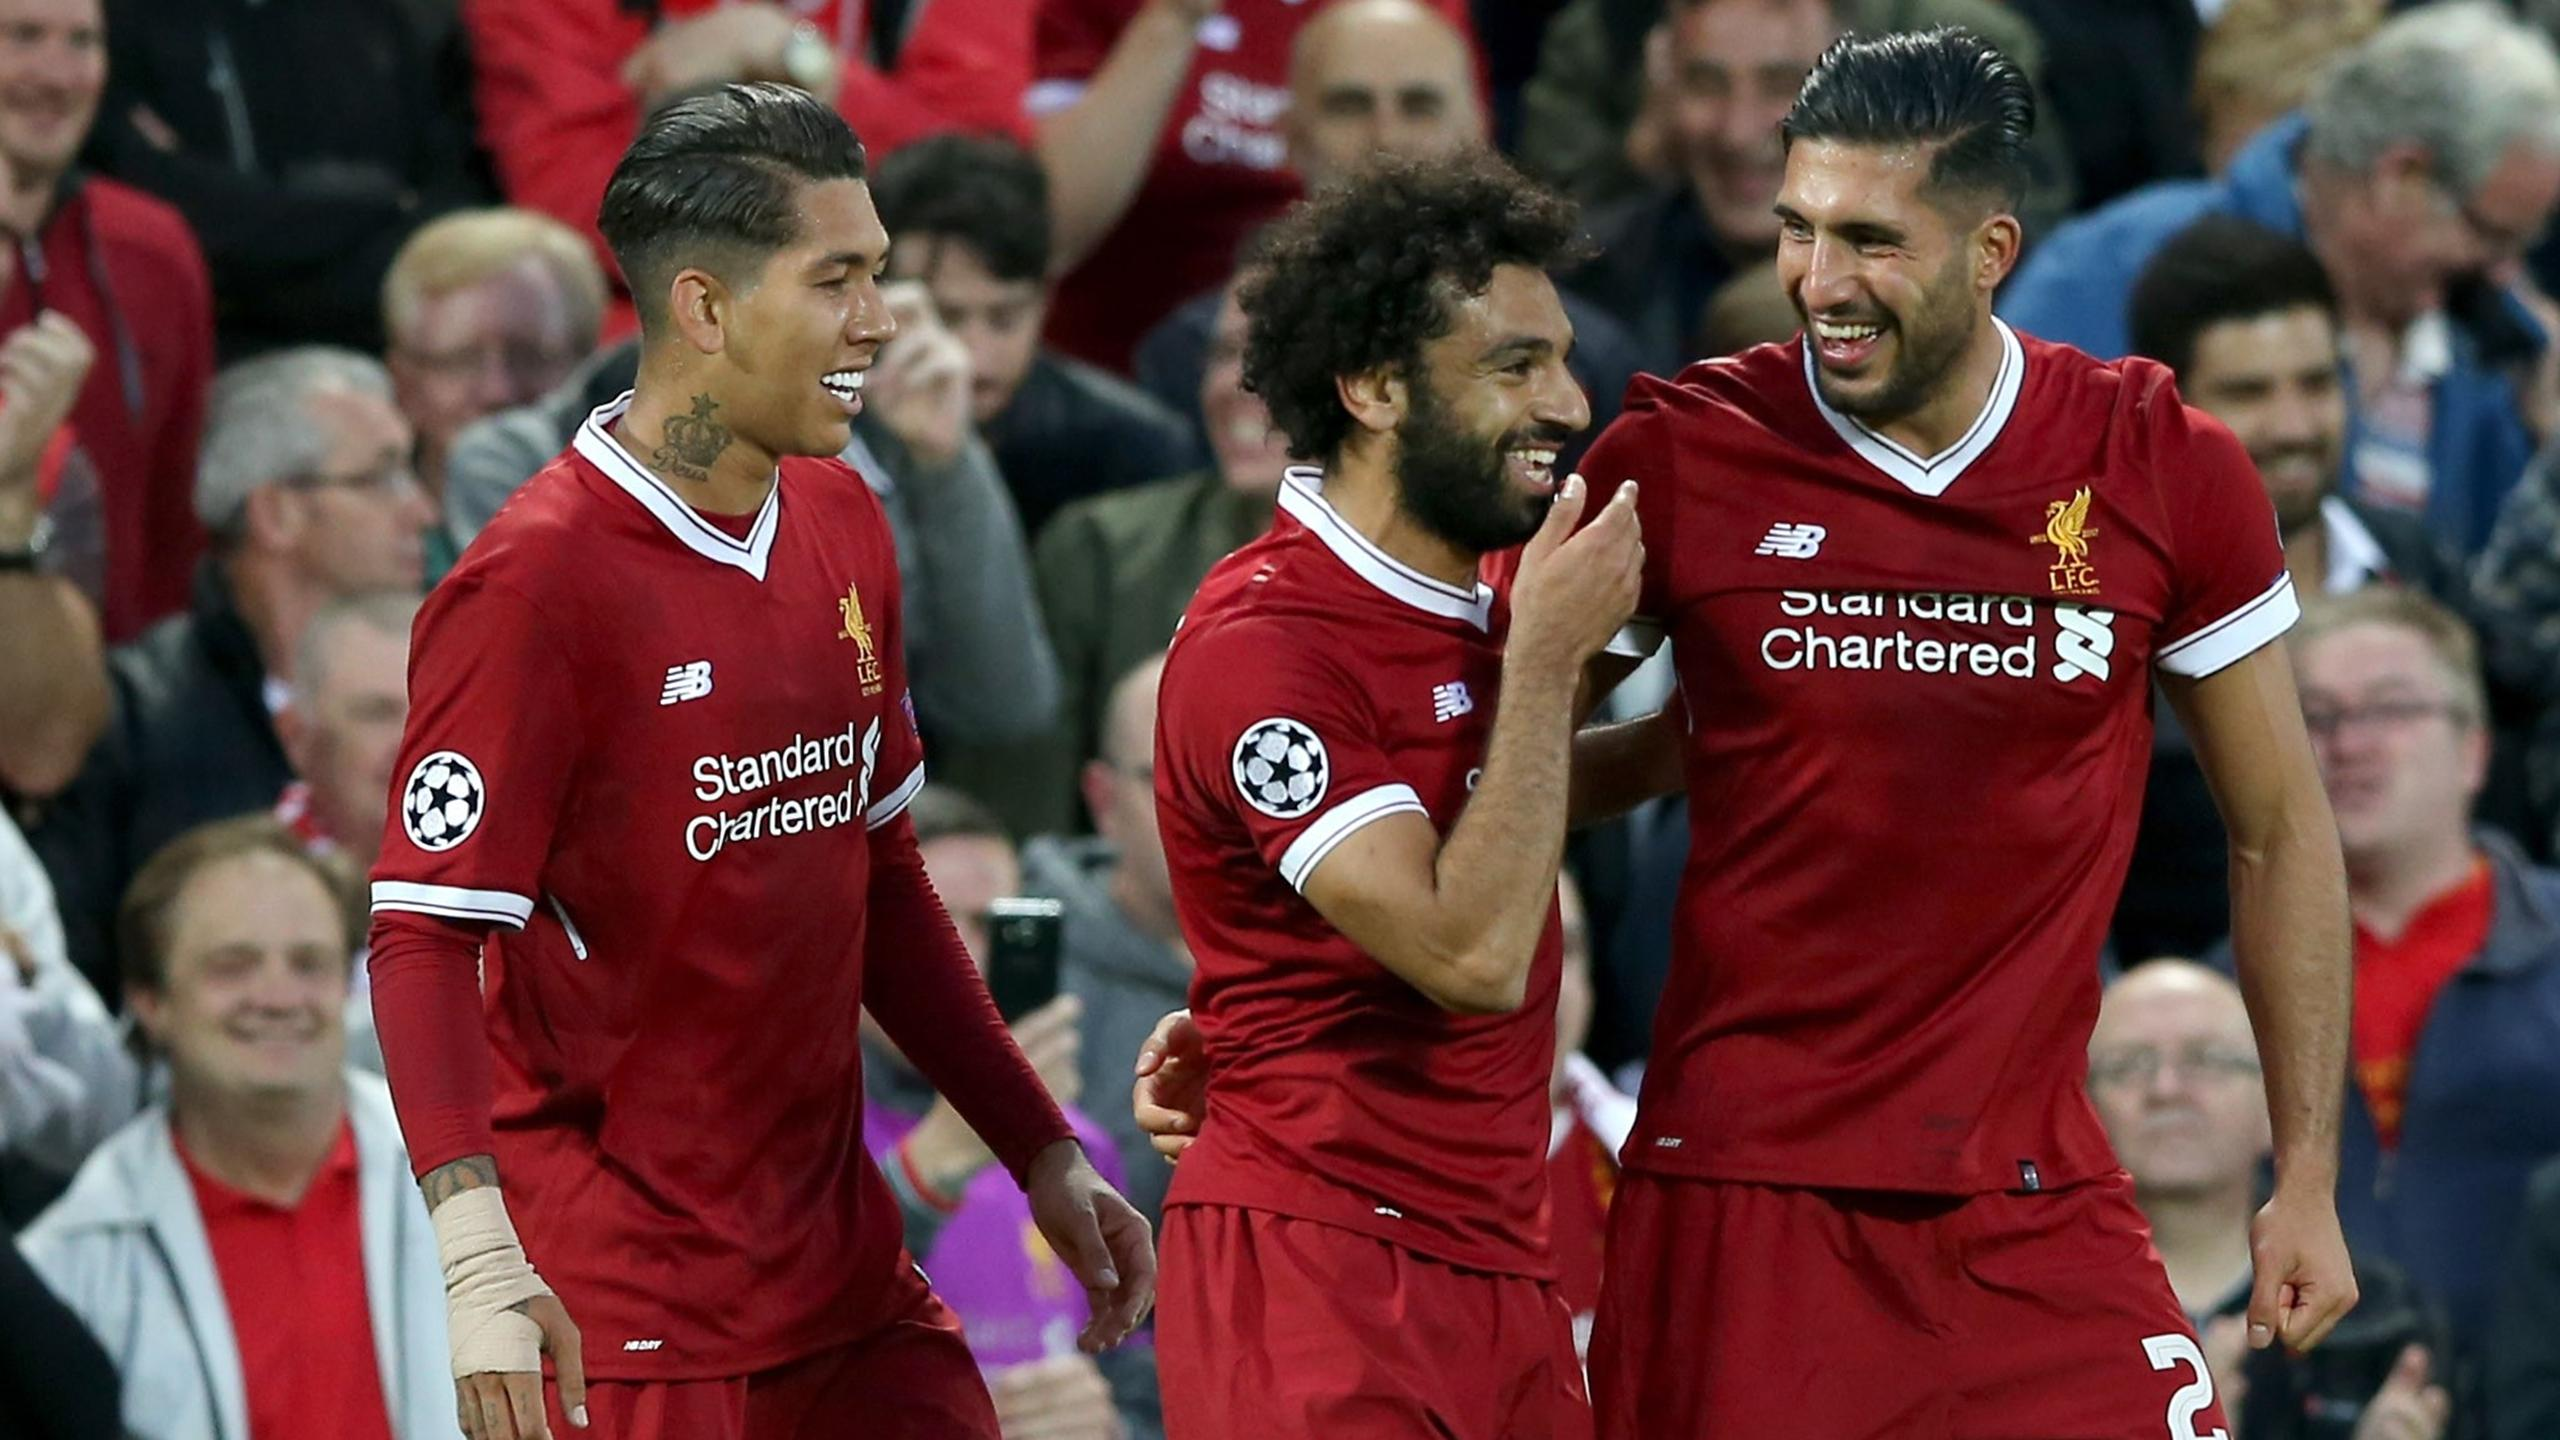 BREAKING: Liverpool qualify for Champions League group stage